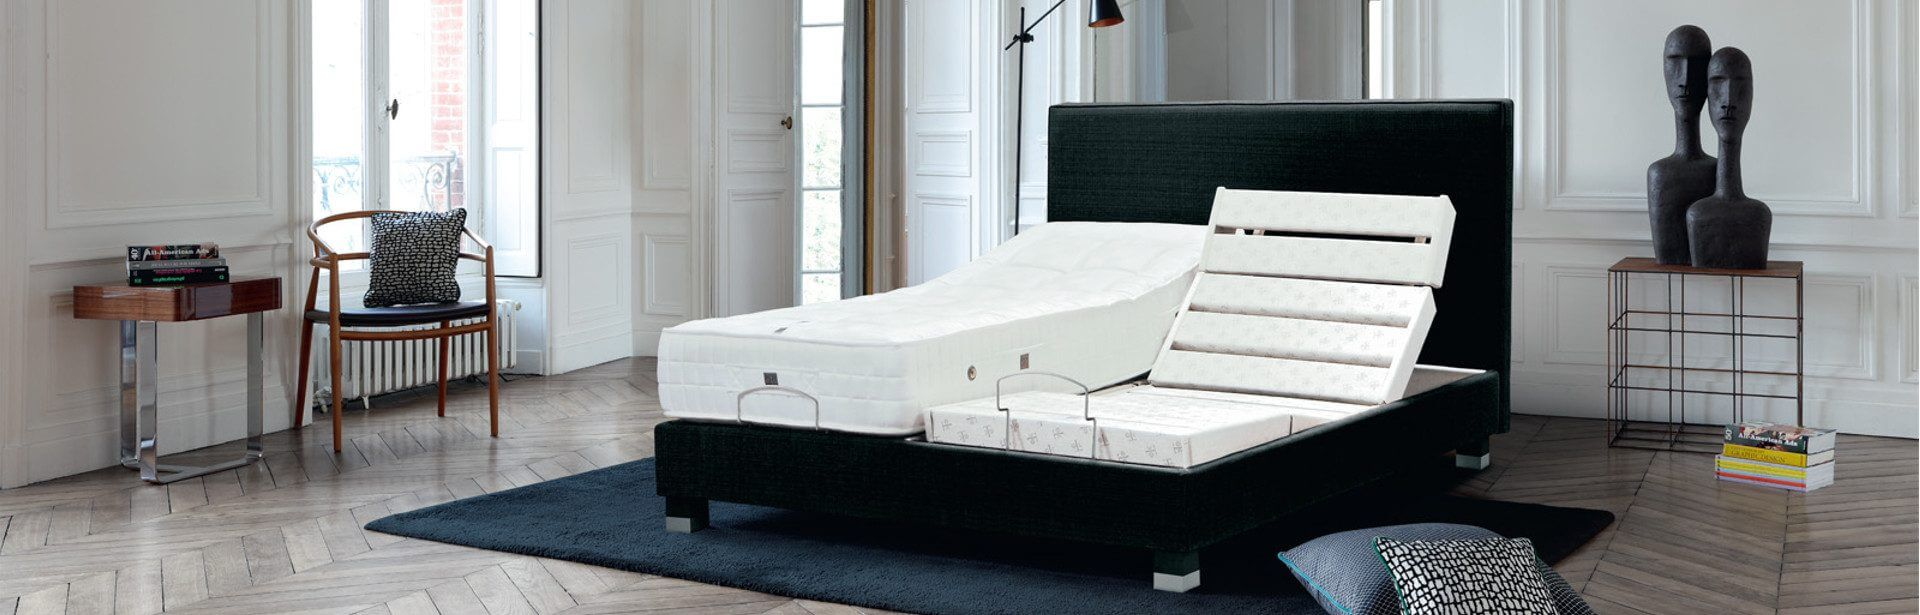 boxspringbetten die besten betten in bonn k ln sleeping art. Black Bedroom Furniture Sets. Home Design Ideas